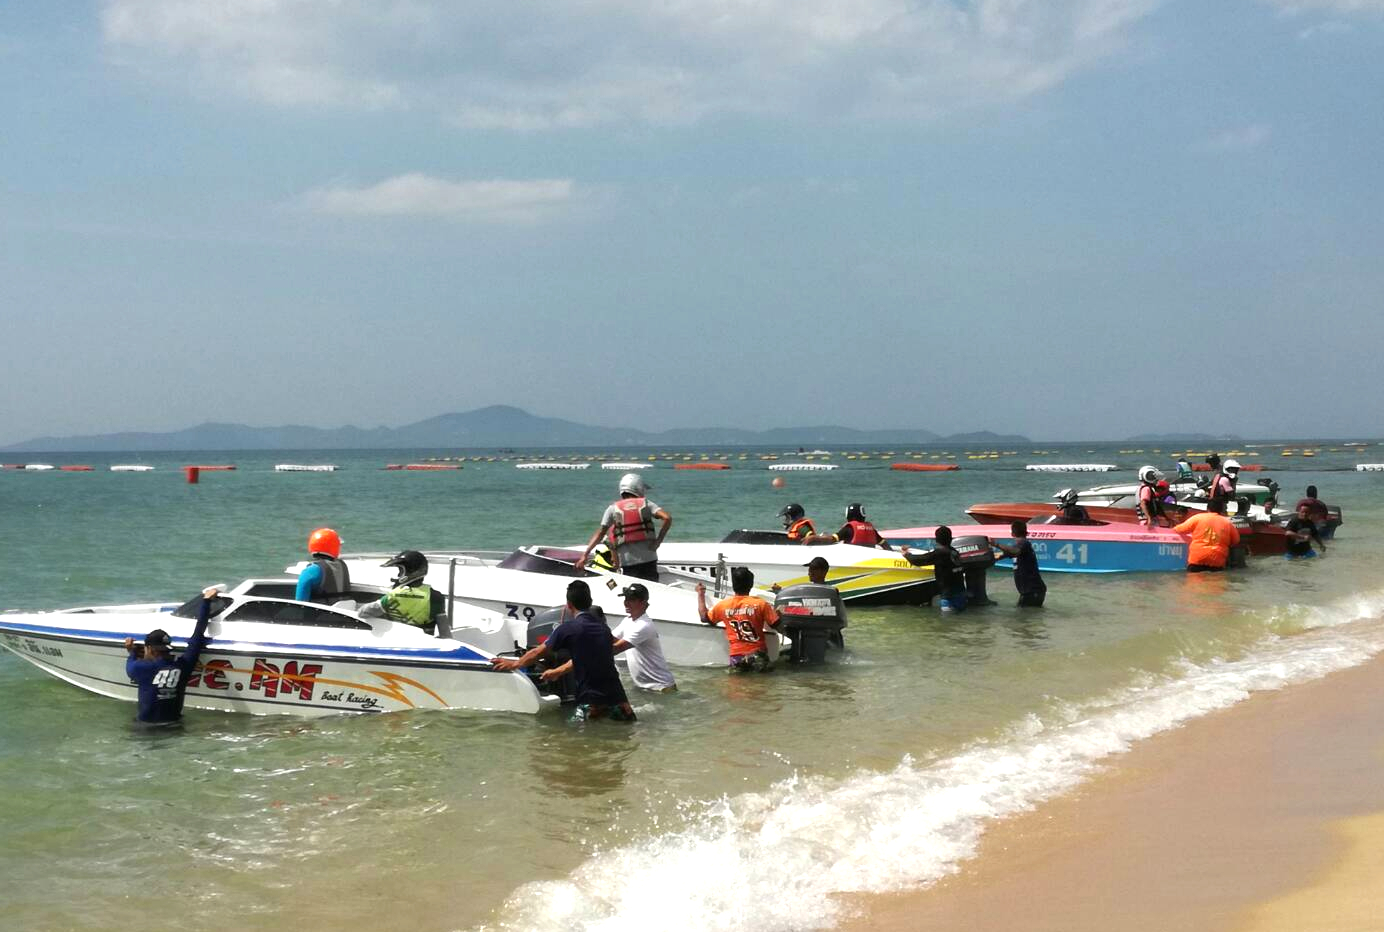 Boats line up on Jomtien beach at the start of another race.